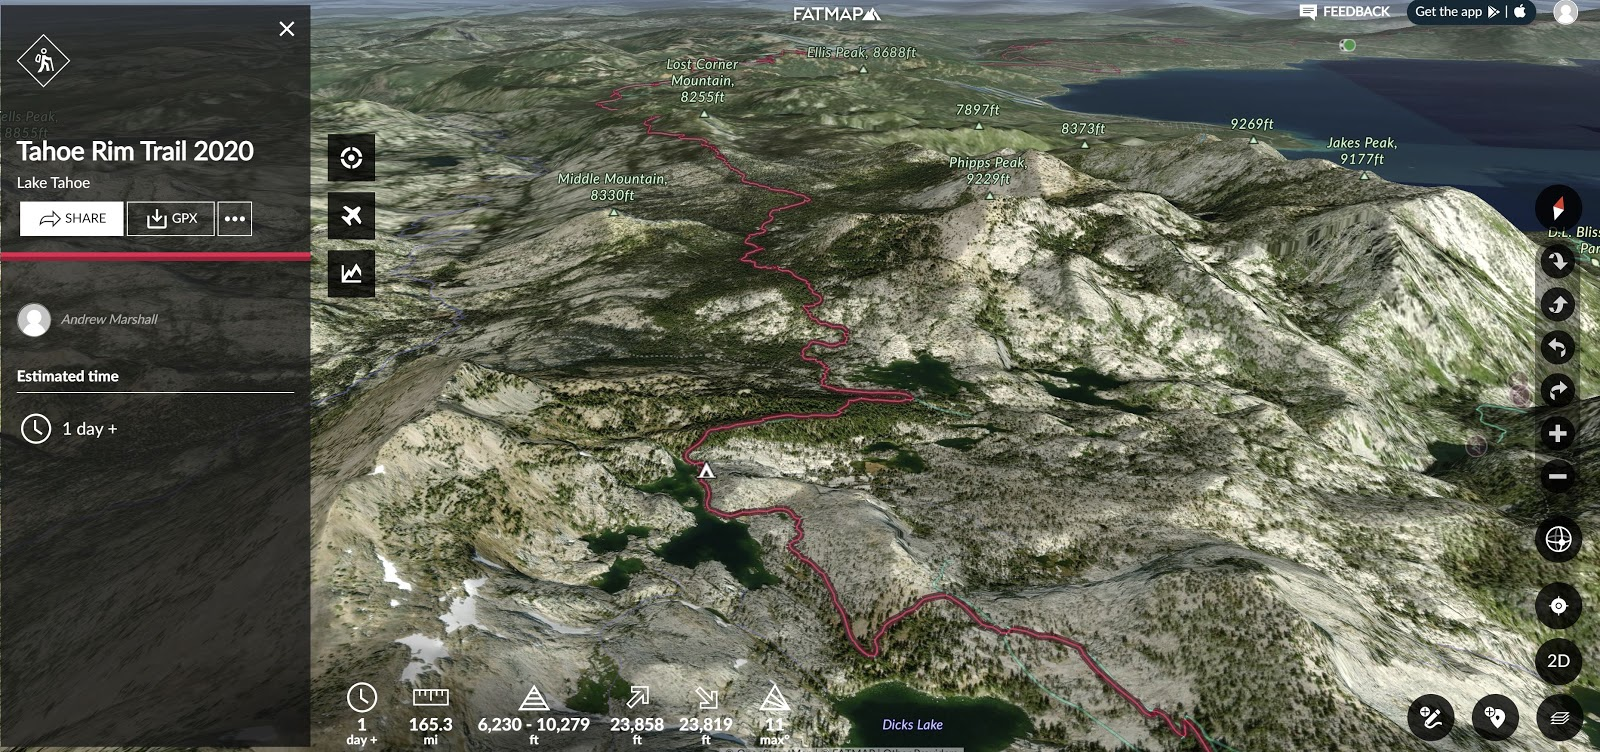 A 3D map of the Lake Tahoe region.